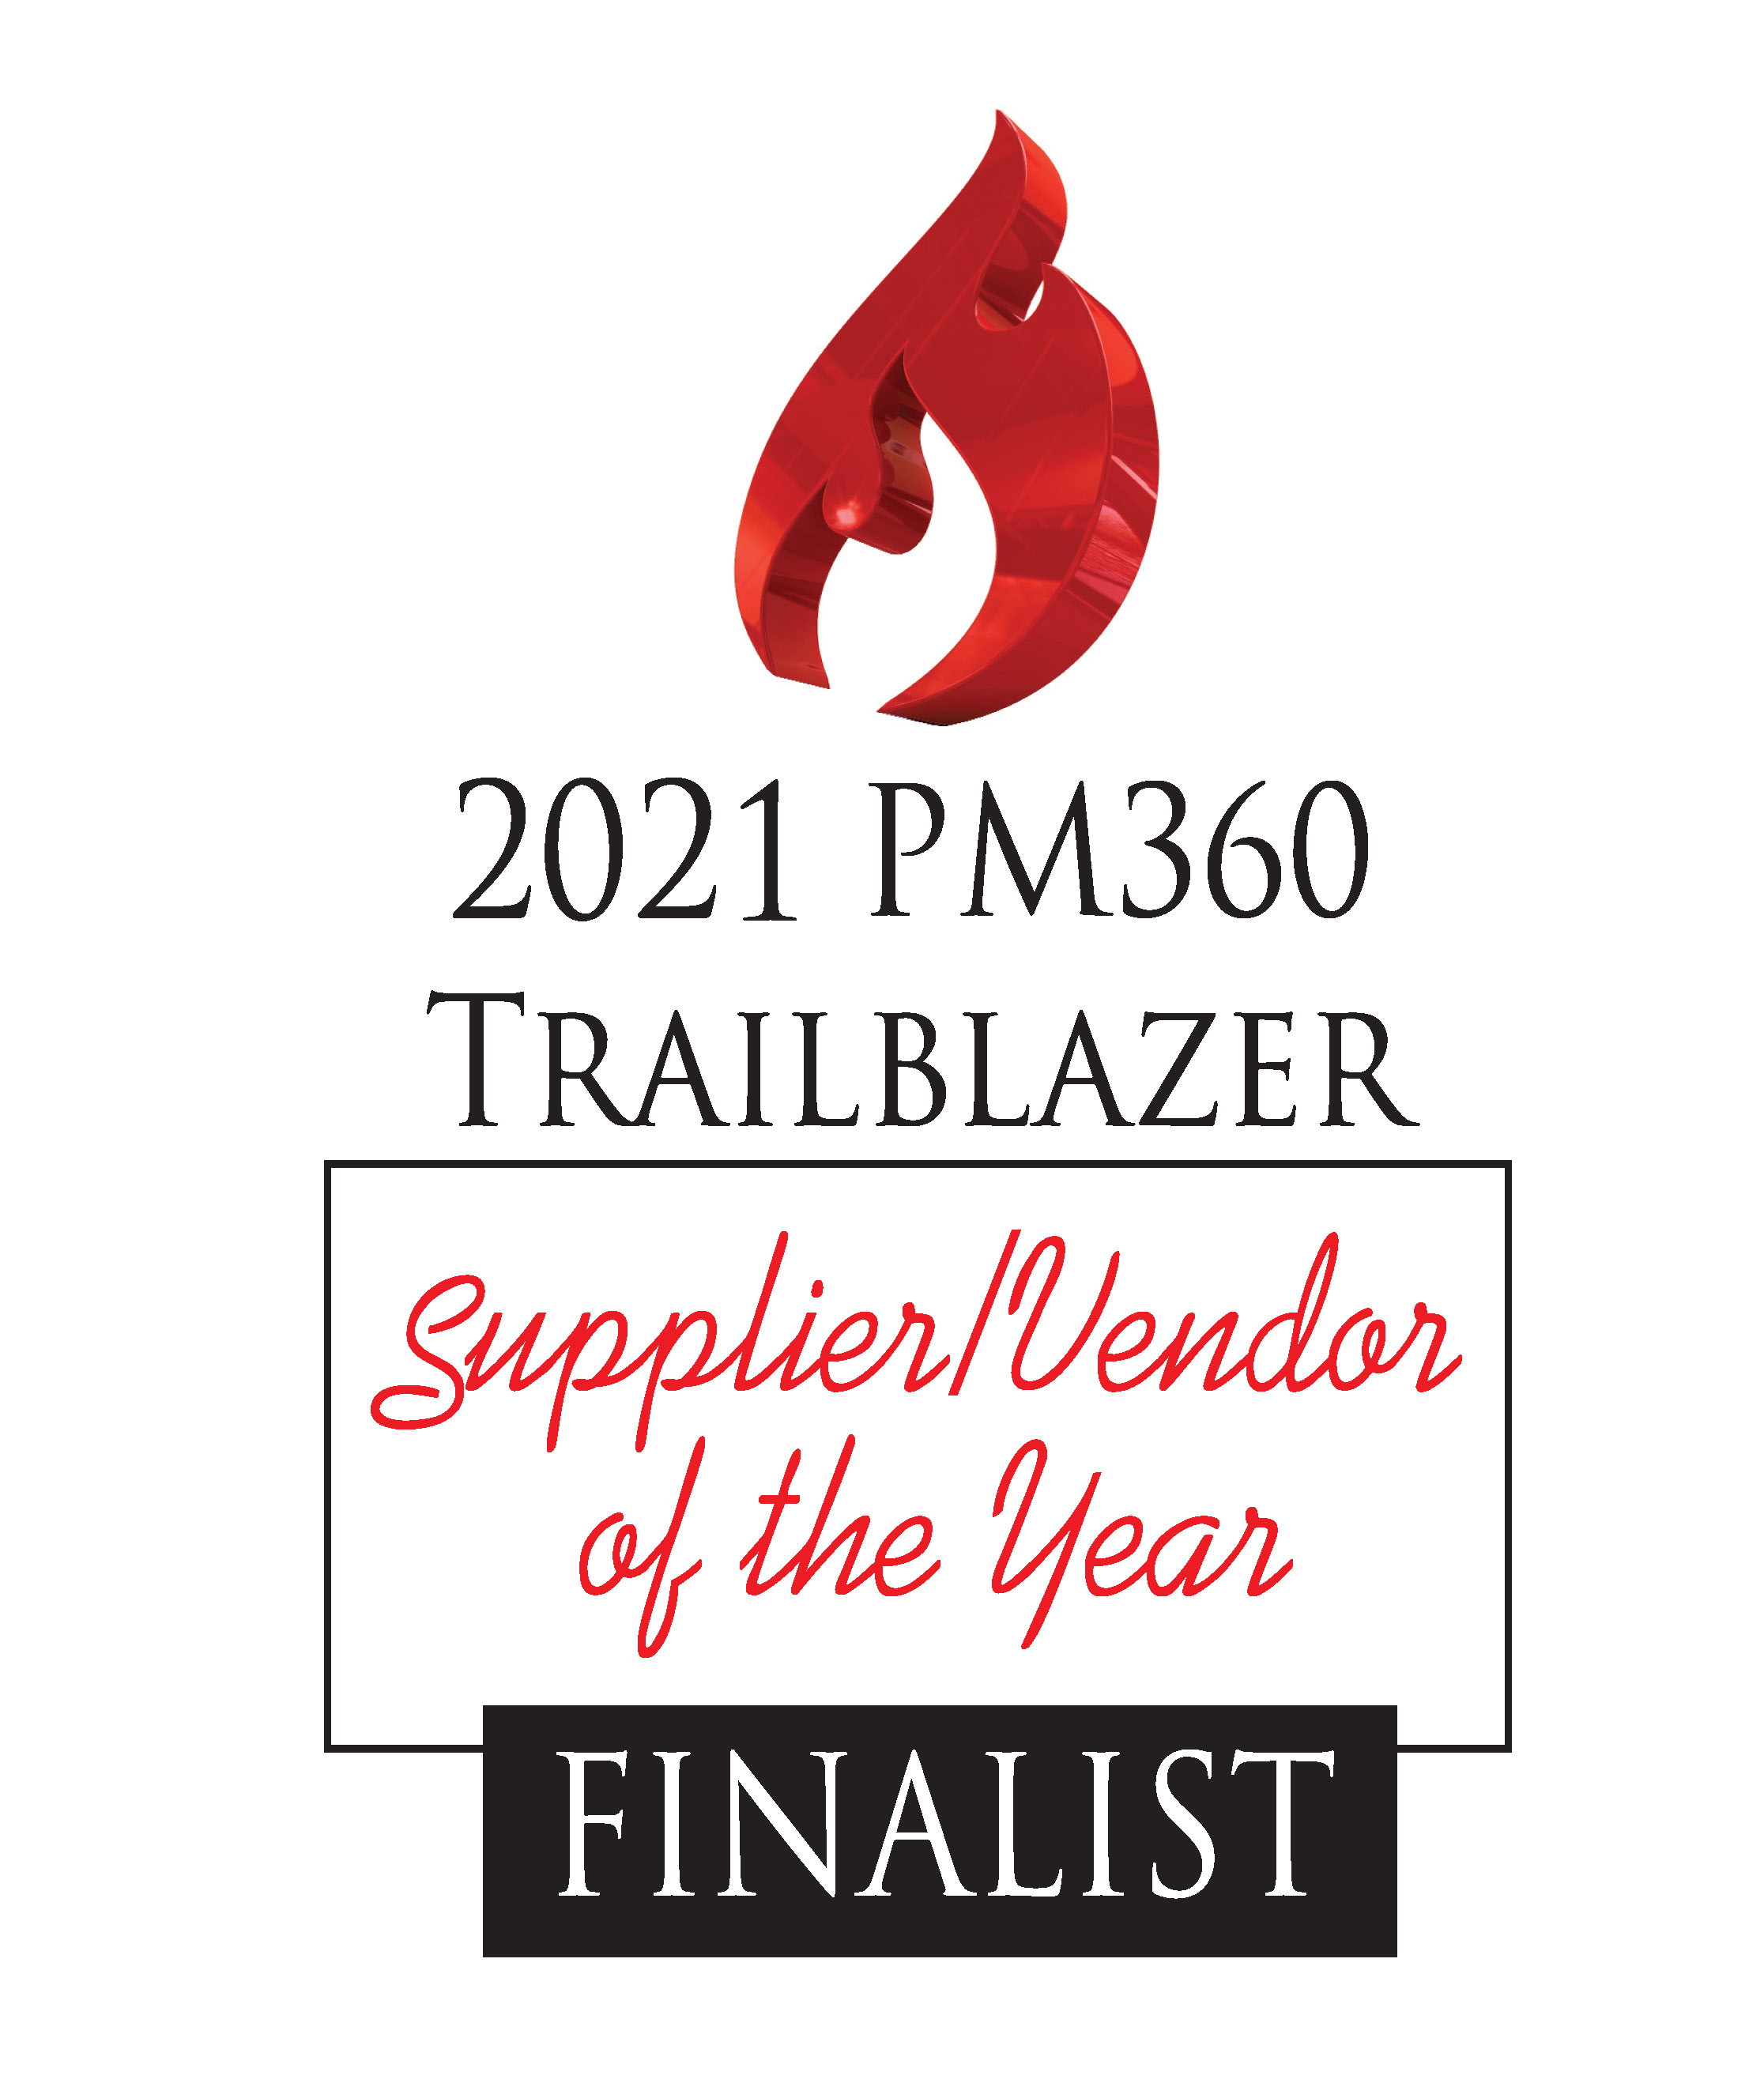 Mesmerize Named PM360 Trailblazer 2021 Finalist for Supplier/Vendor of the Year